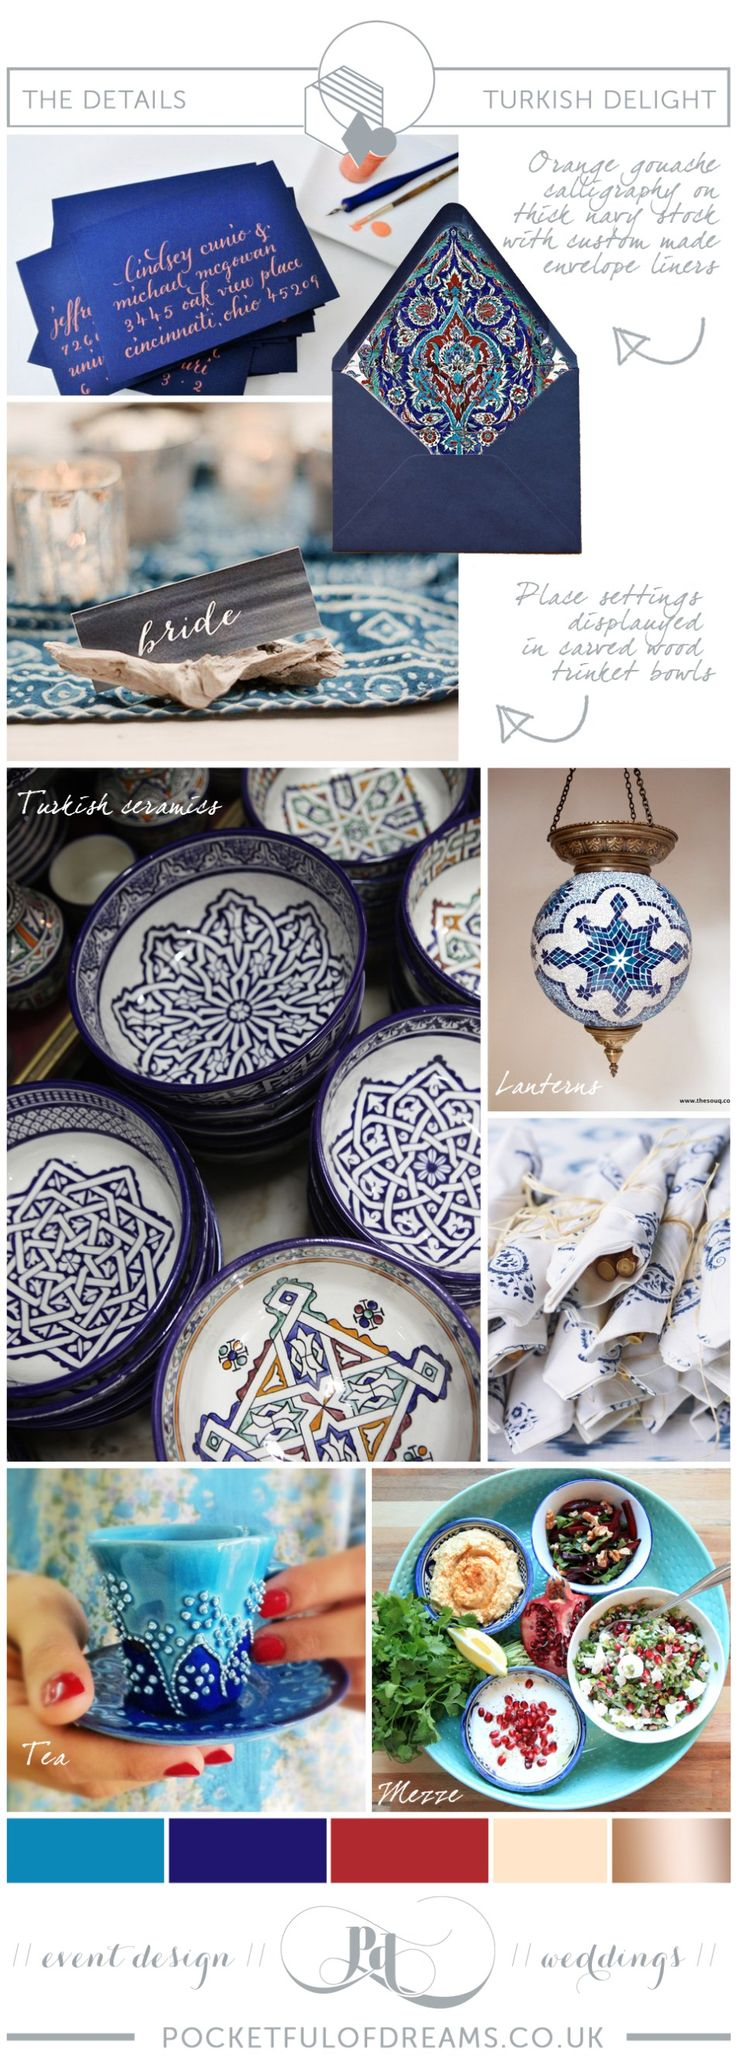 use Turkish ceramics | Wedding                                                                                                                                                                                 More